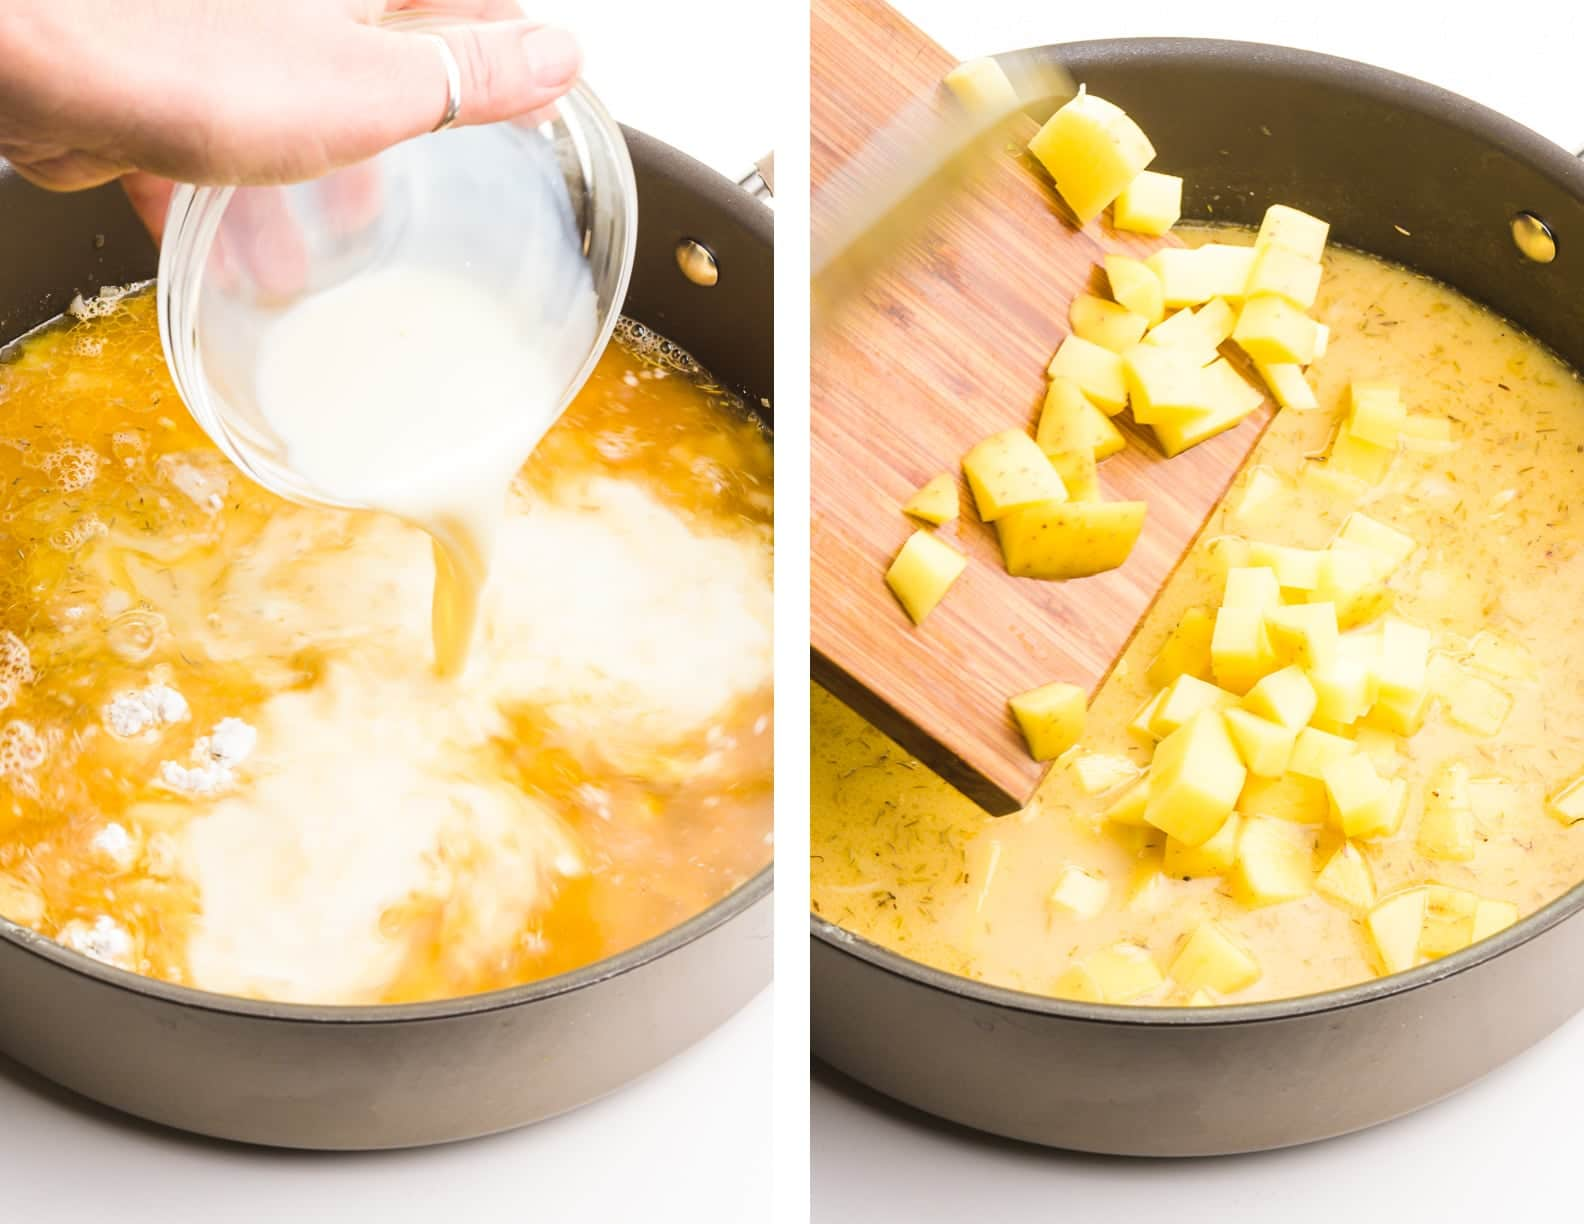 Side-by-side images shows soy milk being poured into a skillet with broth on the left and cubed potatoes being added to that mixture on the right.